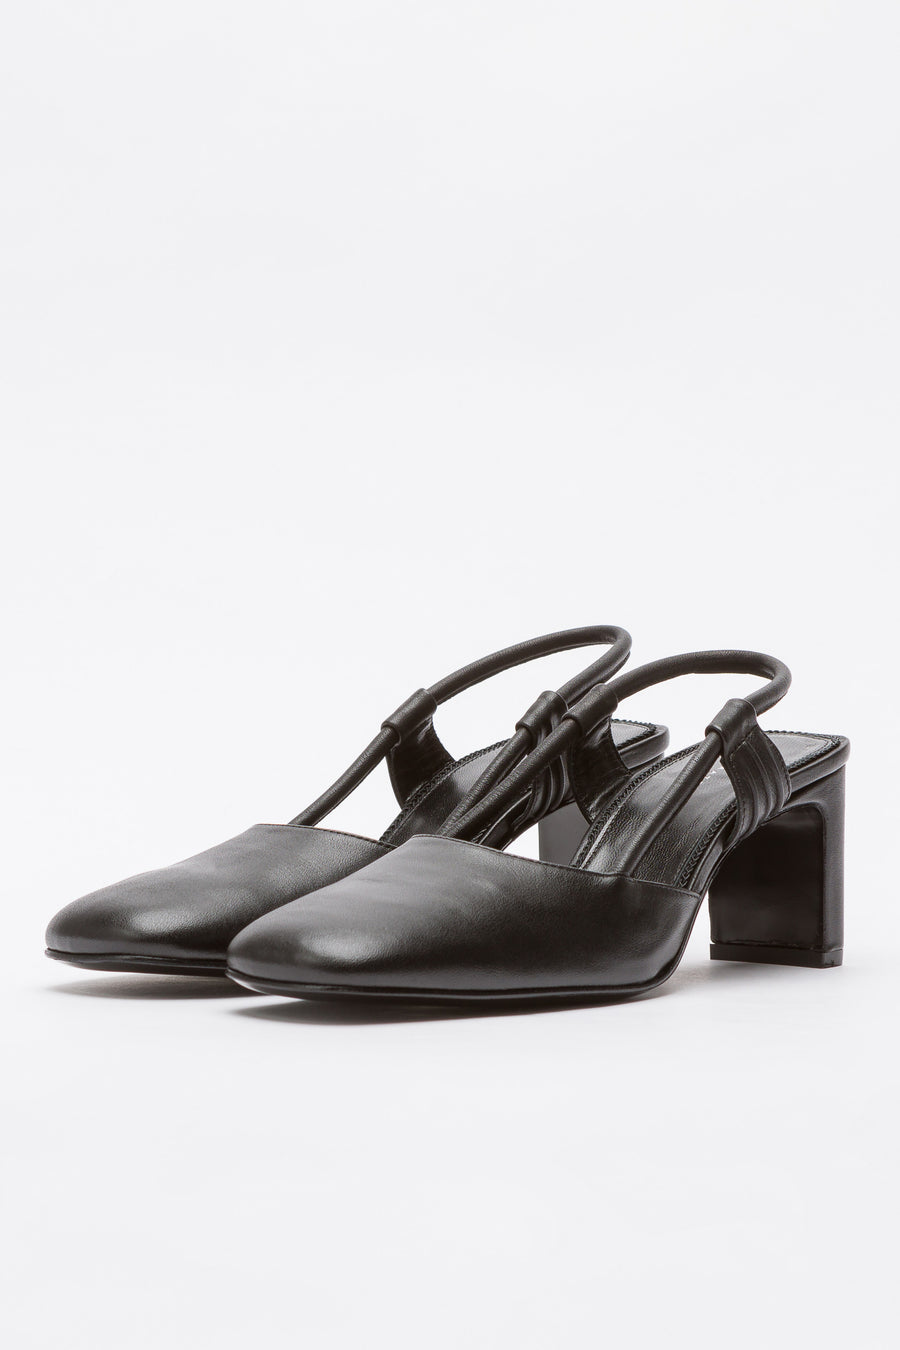 Dorateymur Everyday Slingback in Black Leather - Notre